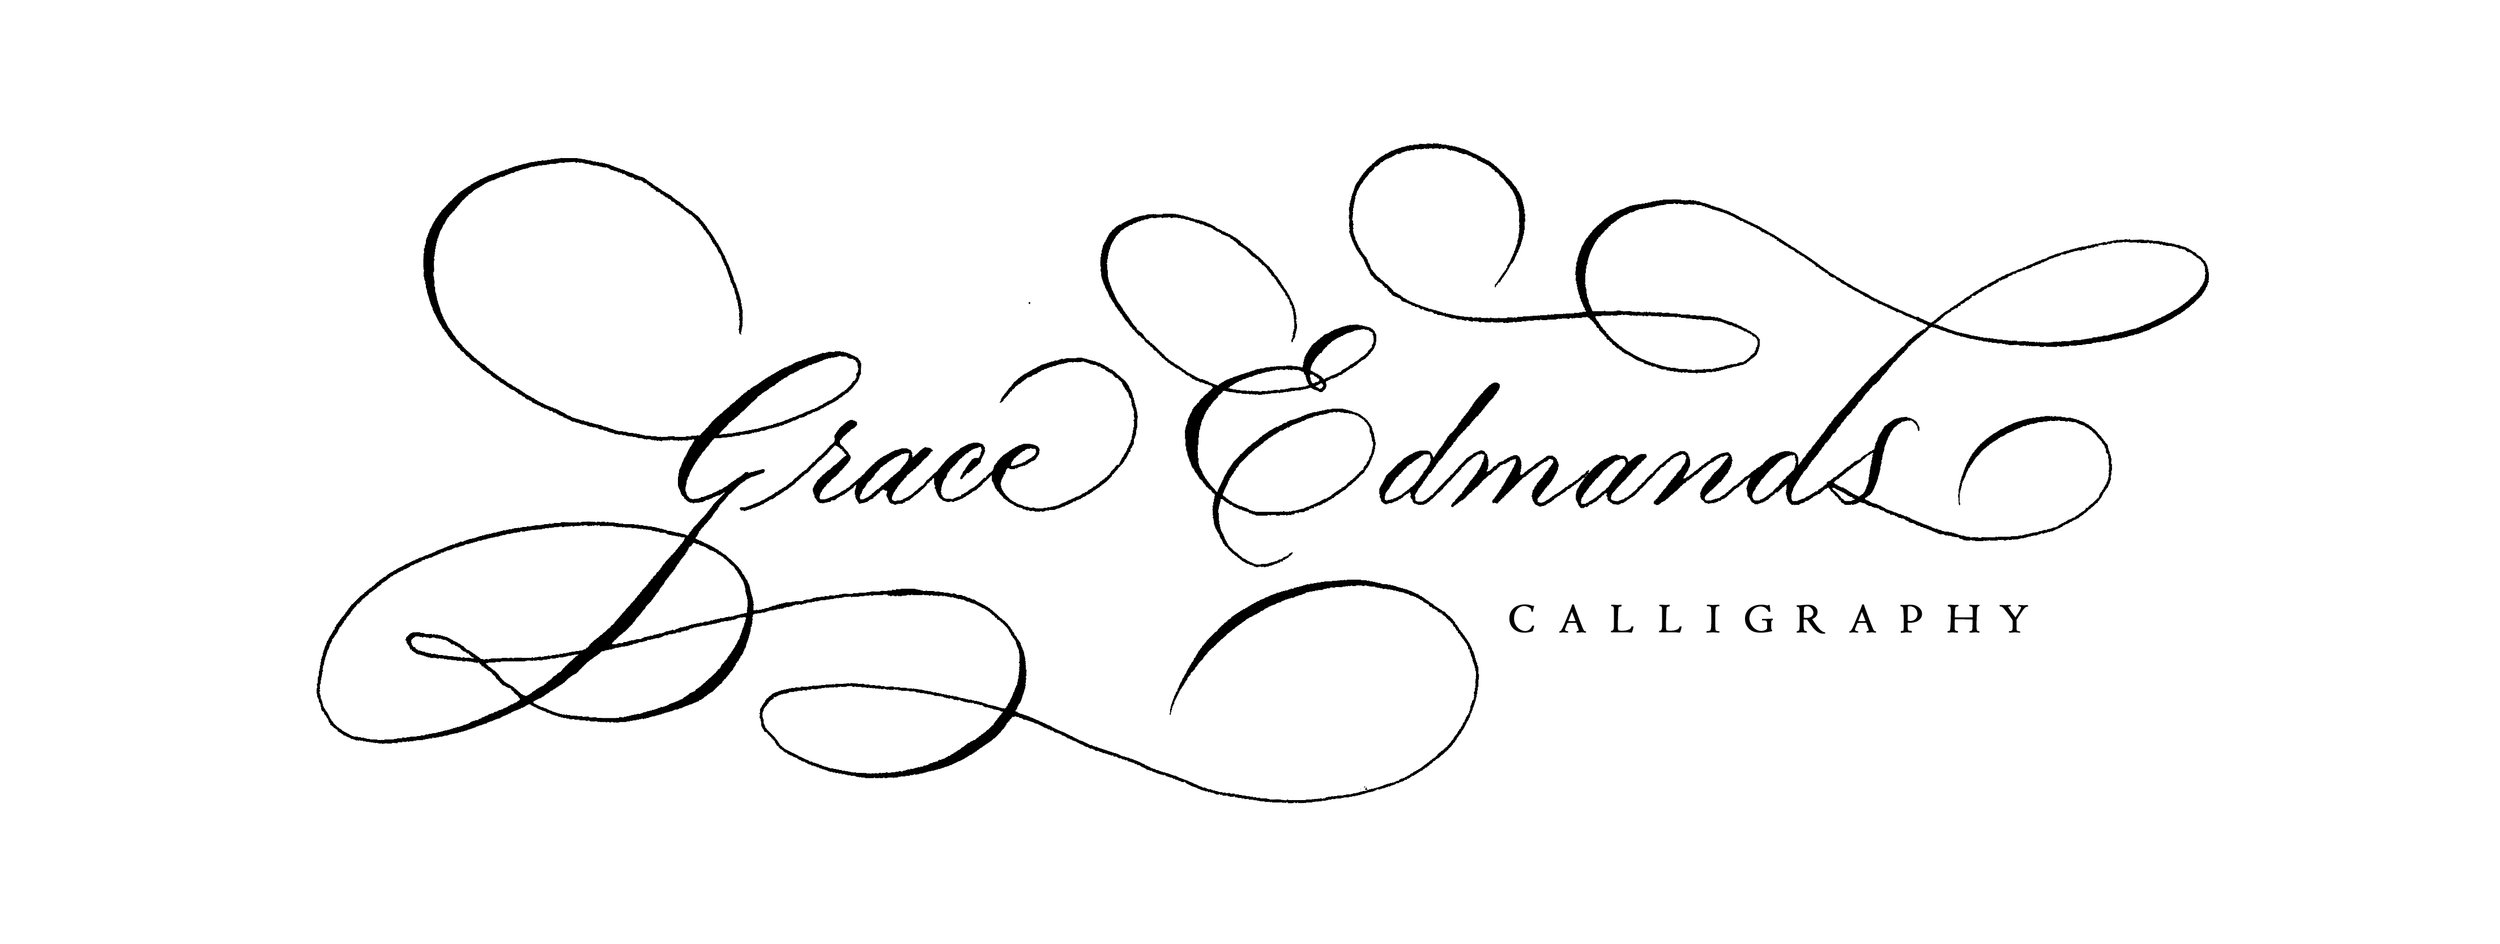 Grace Edmands Logo #1.jpg